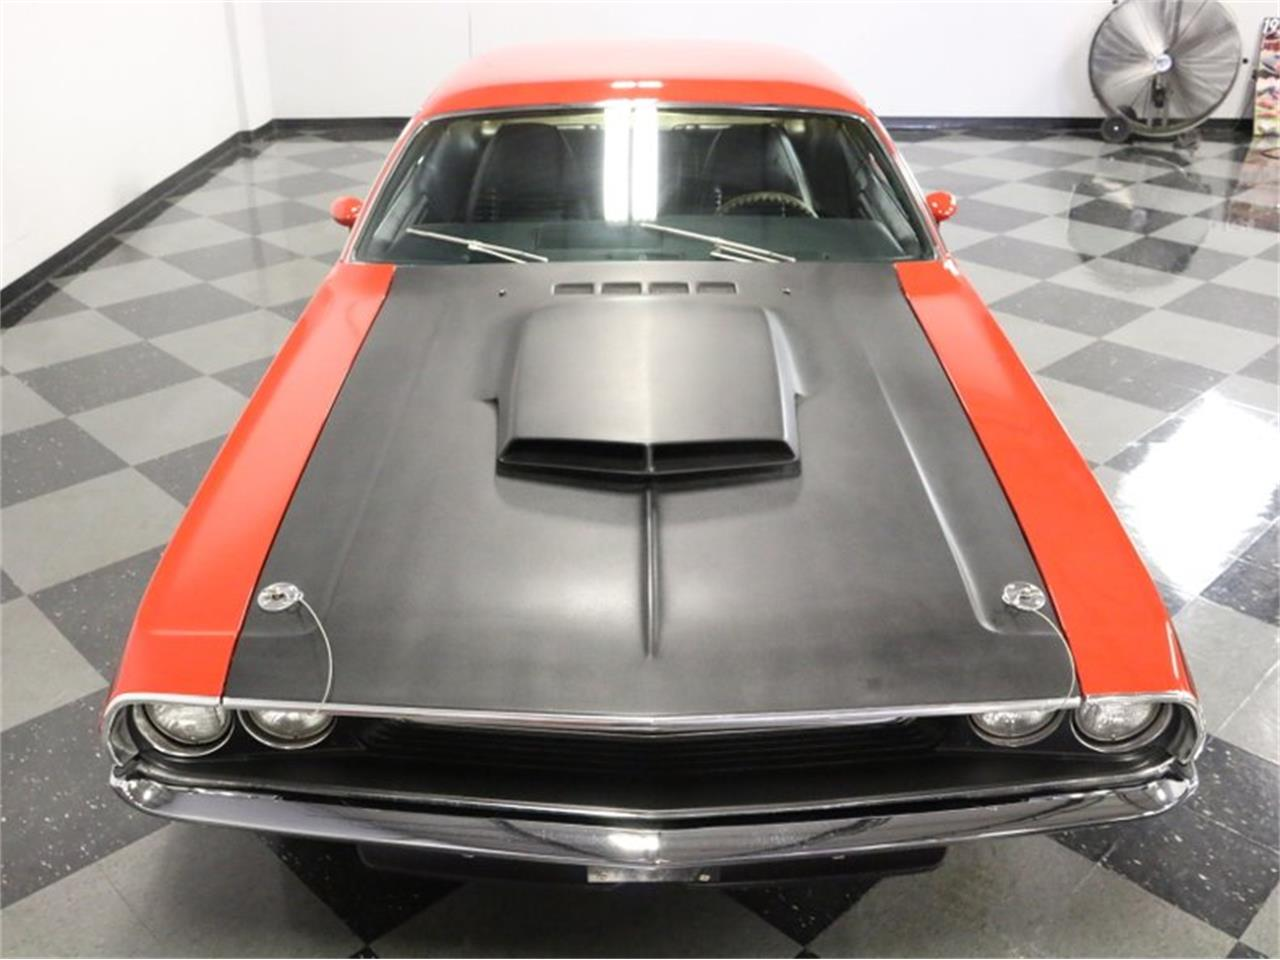 Large Picture of Classic '70 Dodge Challenger T/A - $69,995.00 Offered by Streetside Classics - Dallas / Fort Worth - N7CT